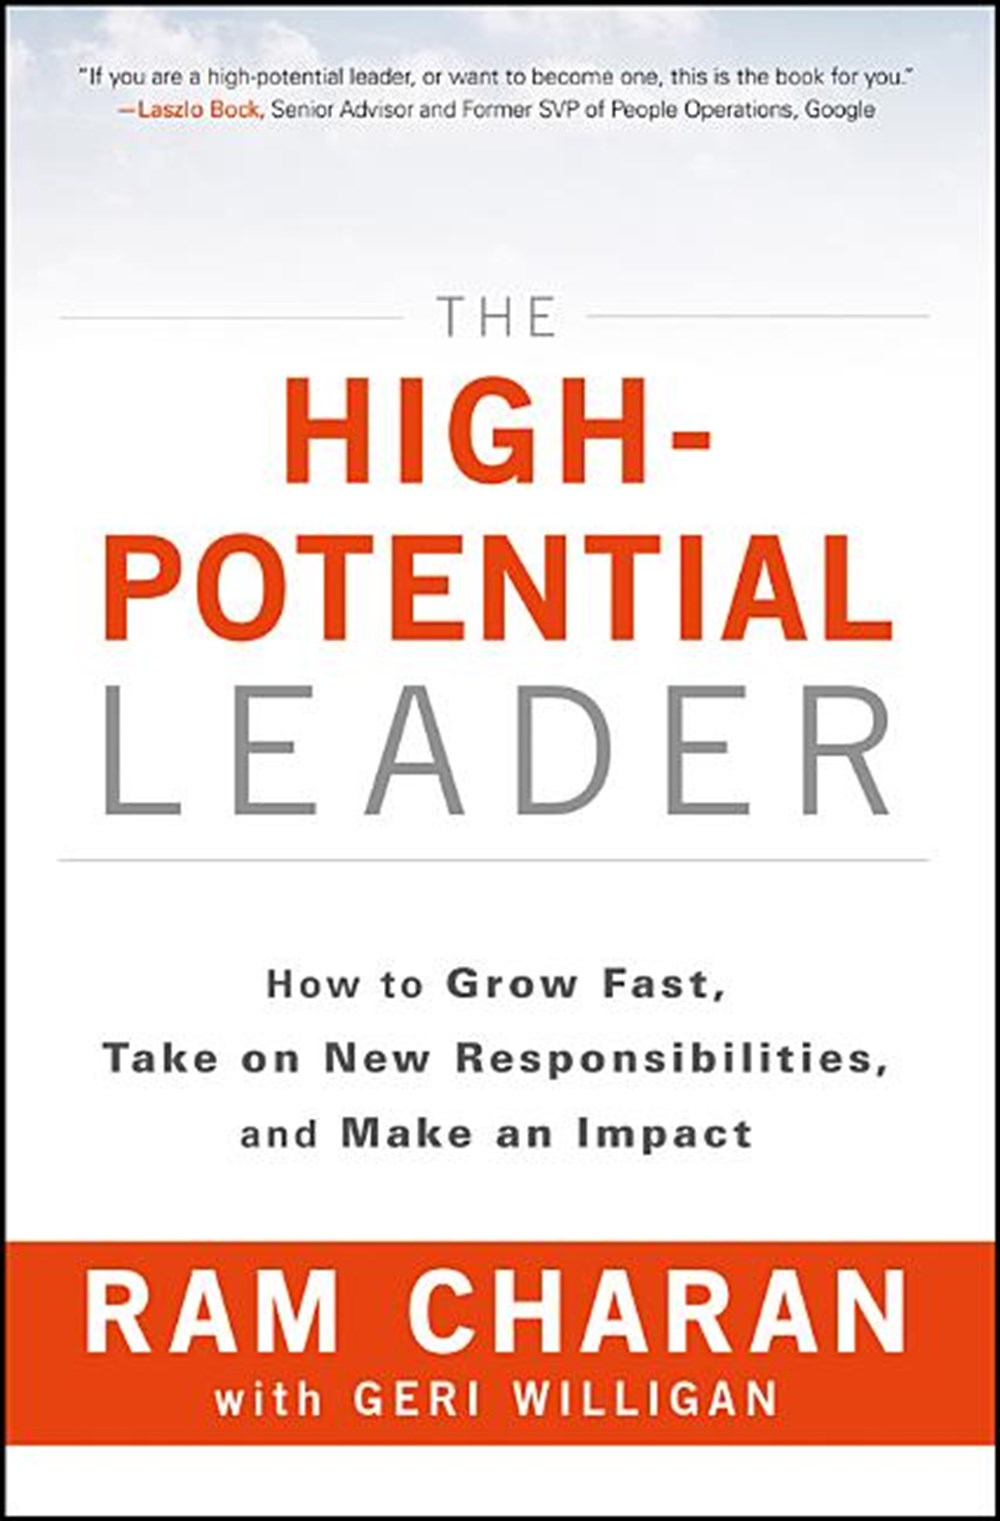 High-Potential Leader How to Grow Fast, Take on New Responsibilities, and Make an Impact